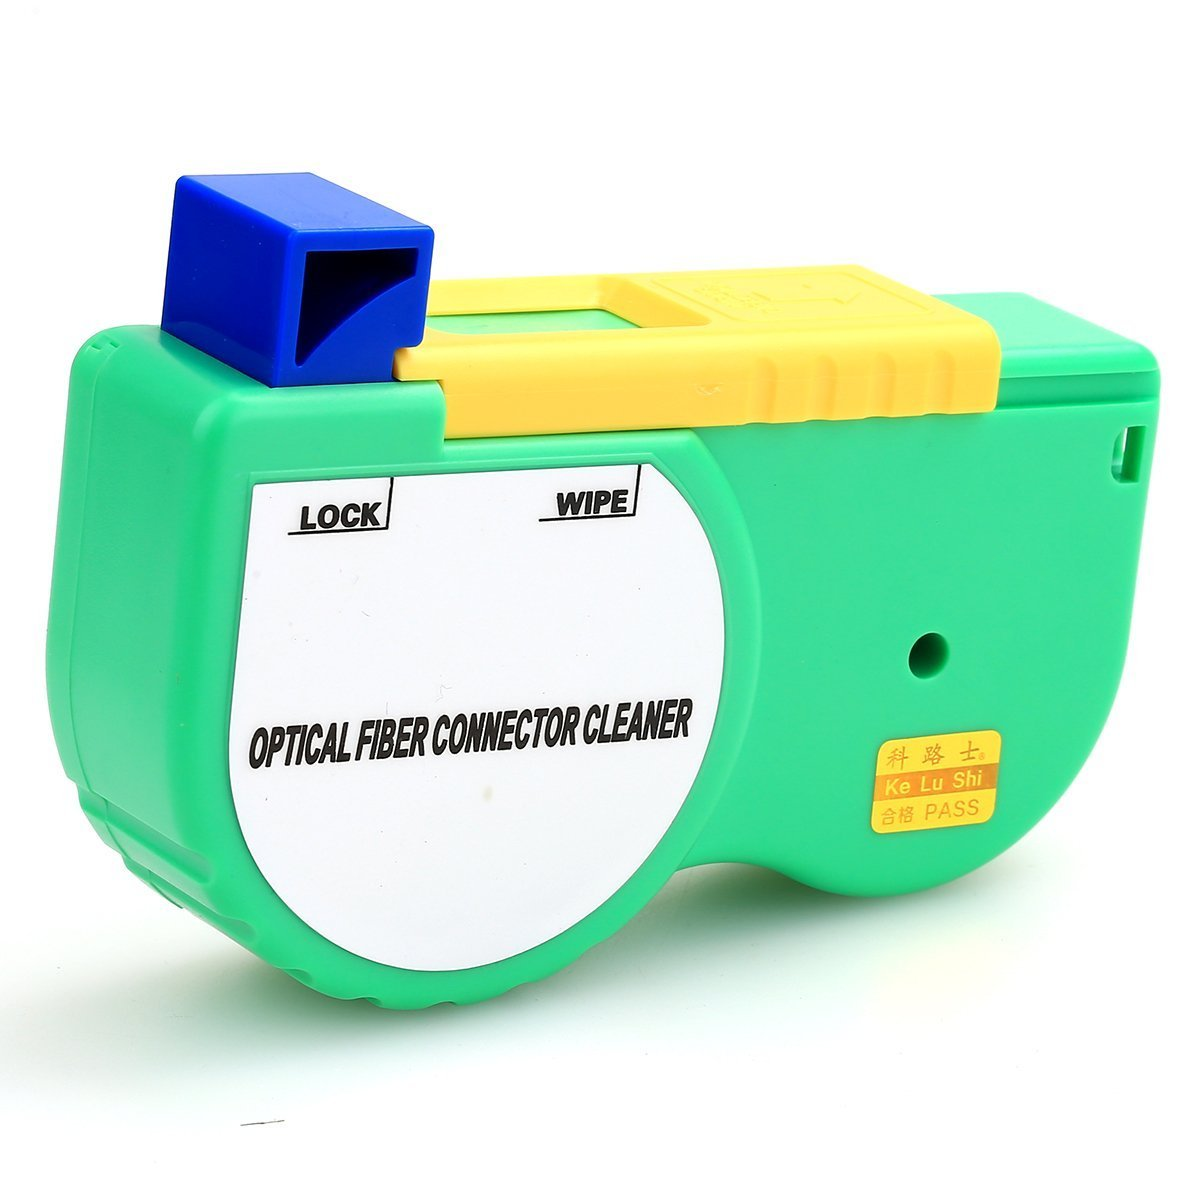 Fiber Optic Cleaner for SC, FC, St, MU, LC, MPO, MT, MTRJ (w/o pins) connectors, Tape Cleaner